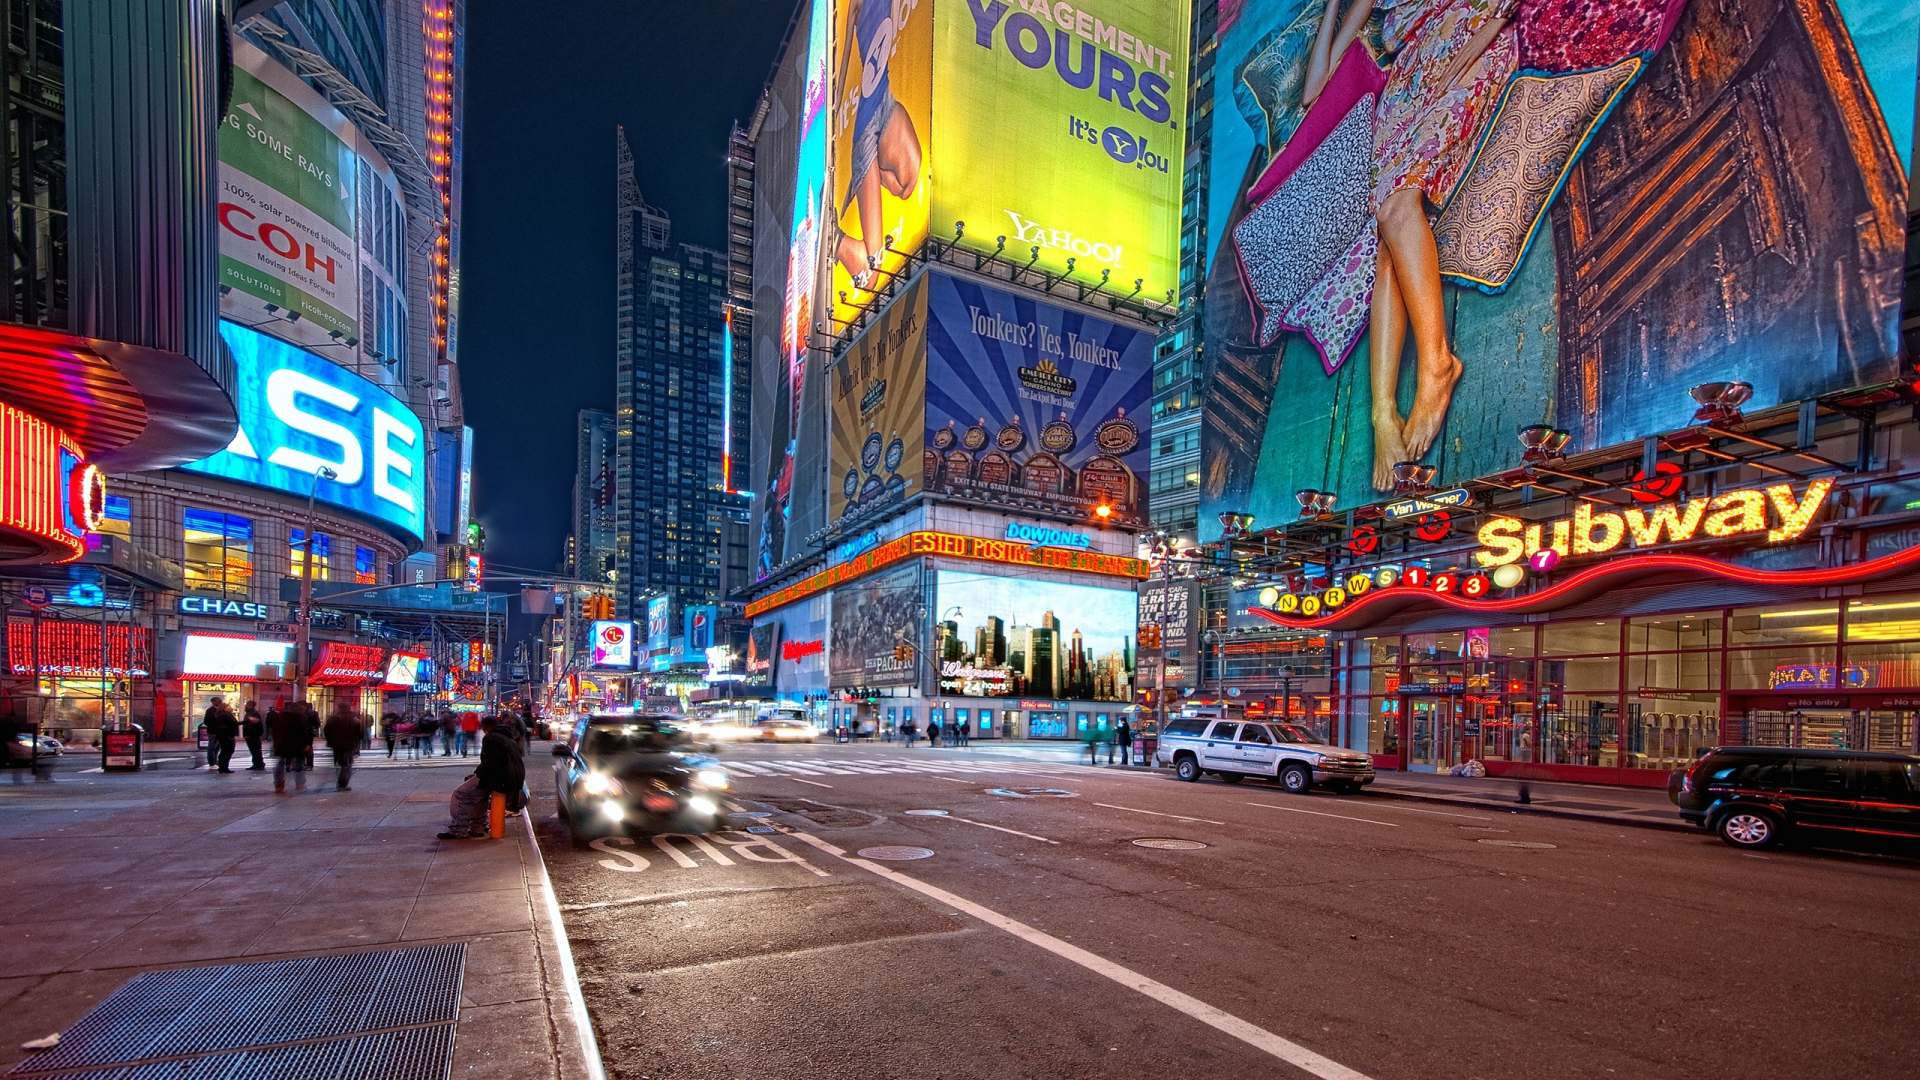 Get The Latest New York Night Street News Pictures And Videos Learn All About From Wallpapers4uorg Your Wallpaper